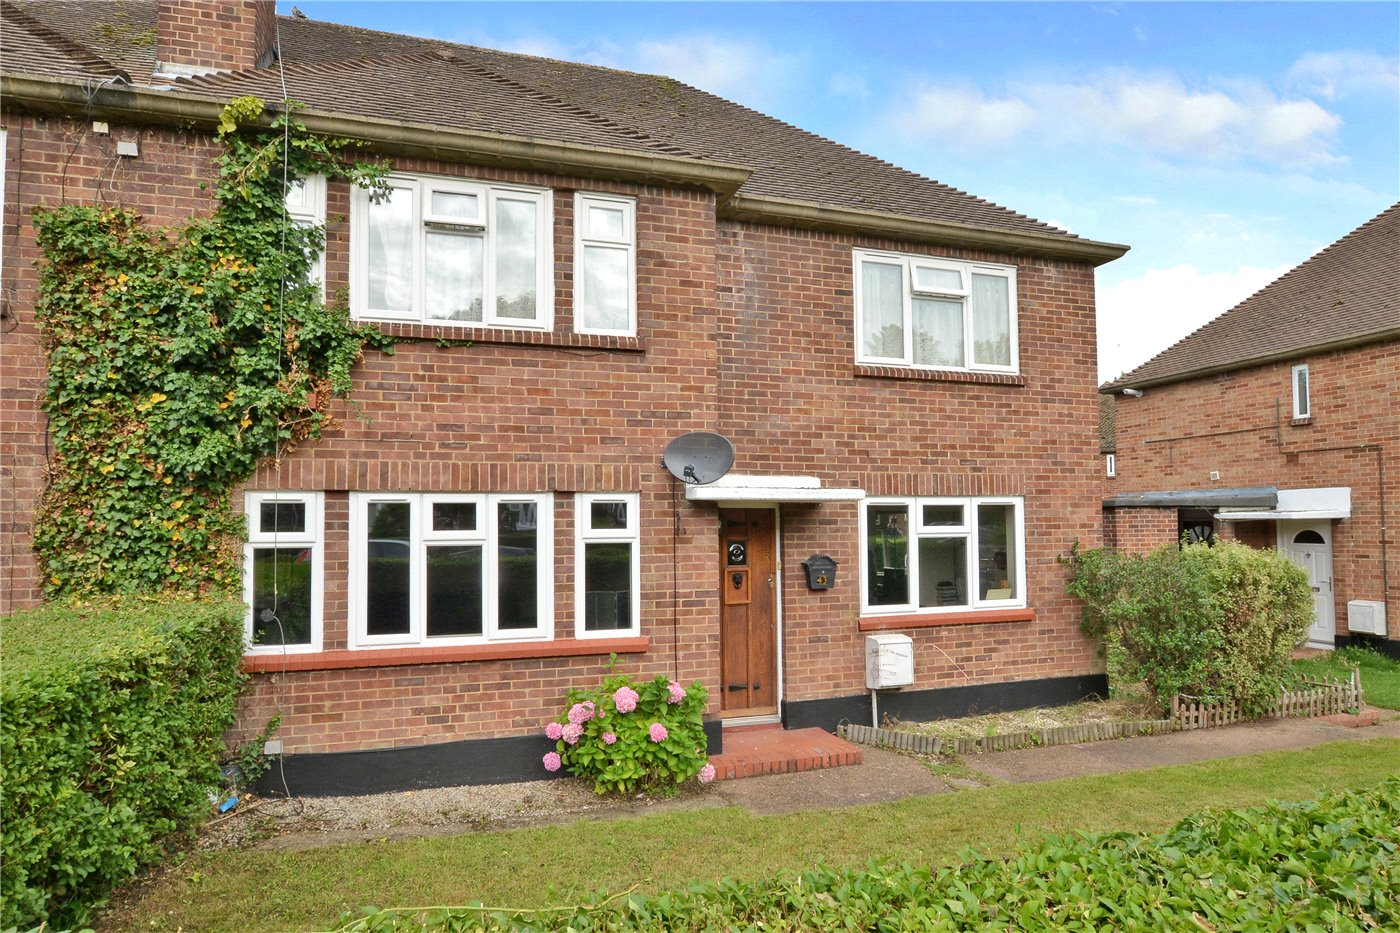 2 Bedrooms Maisonette Flat for sale in Avon Close, Worcester Park, KT4